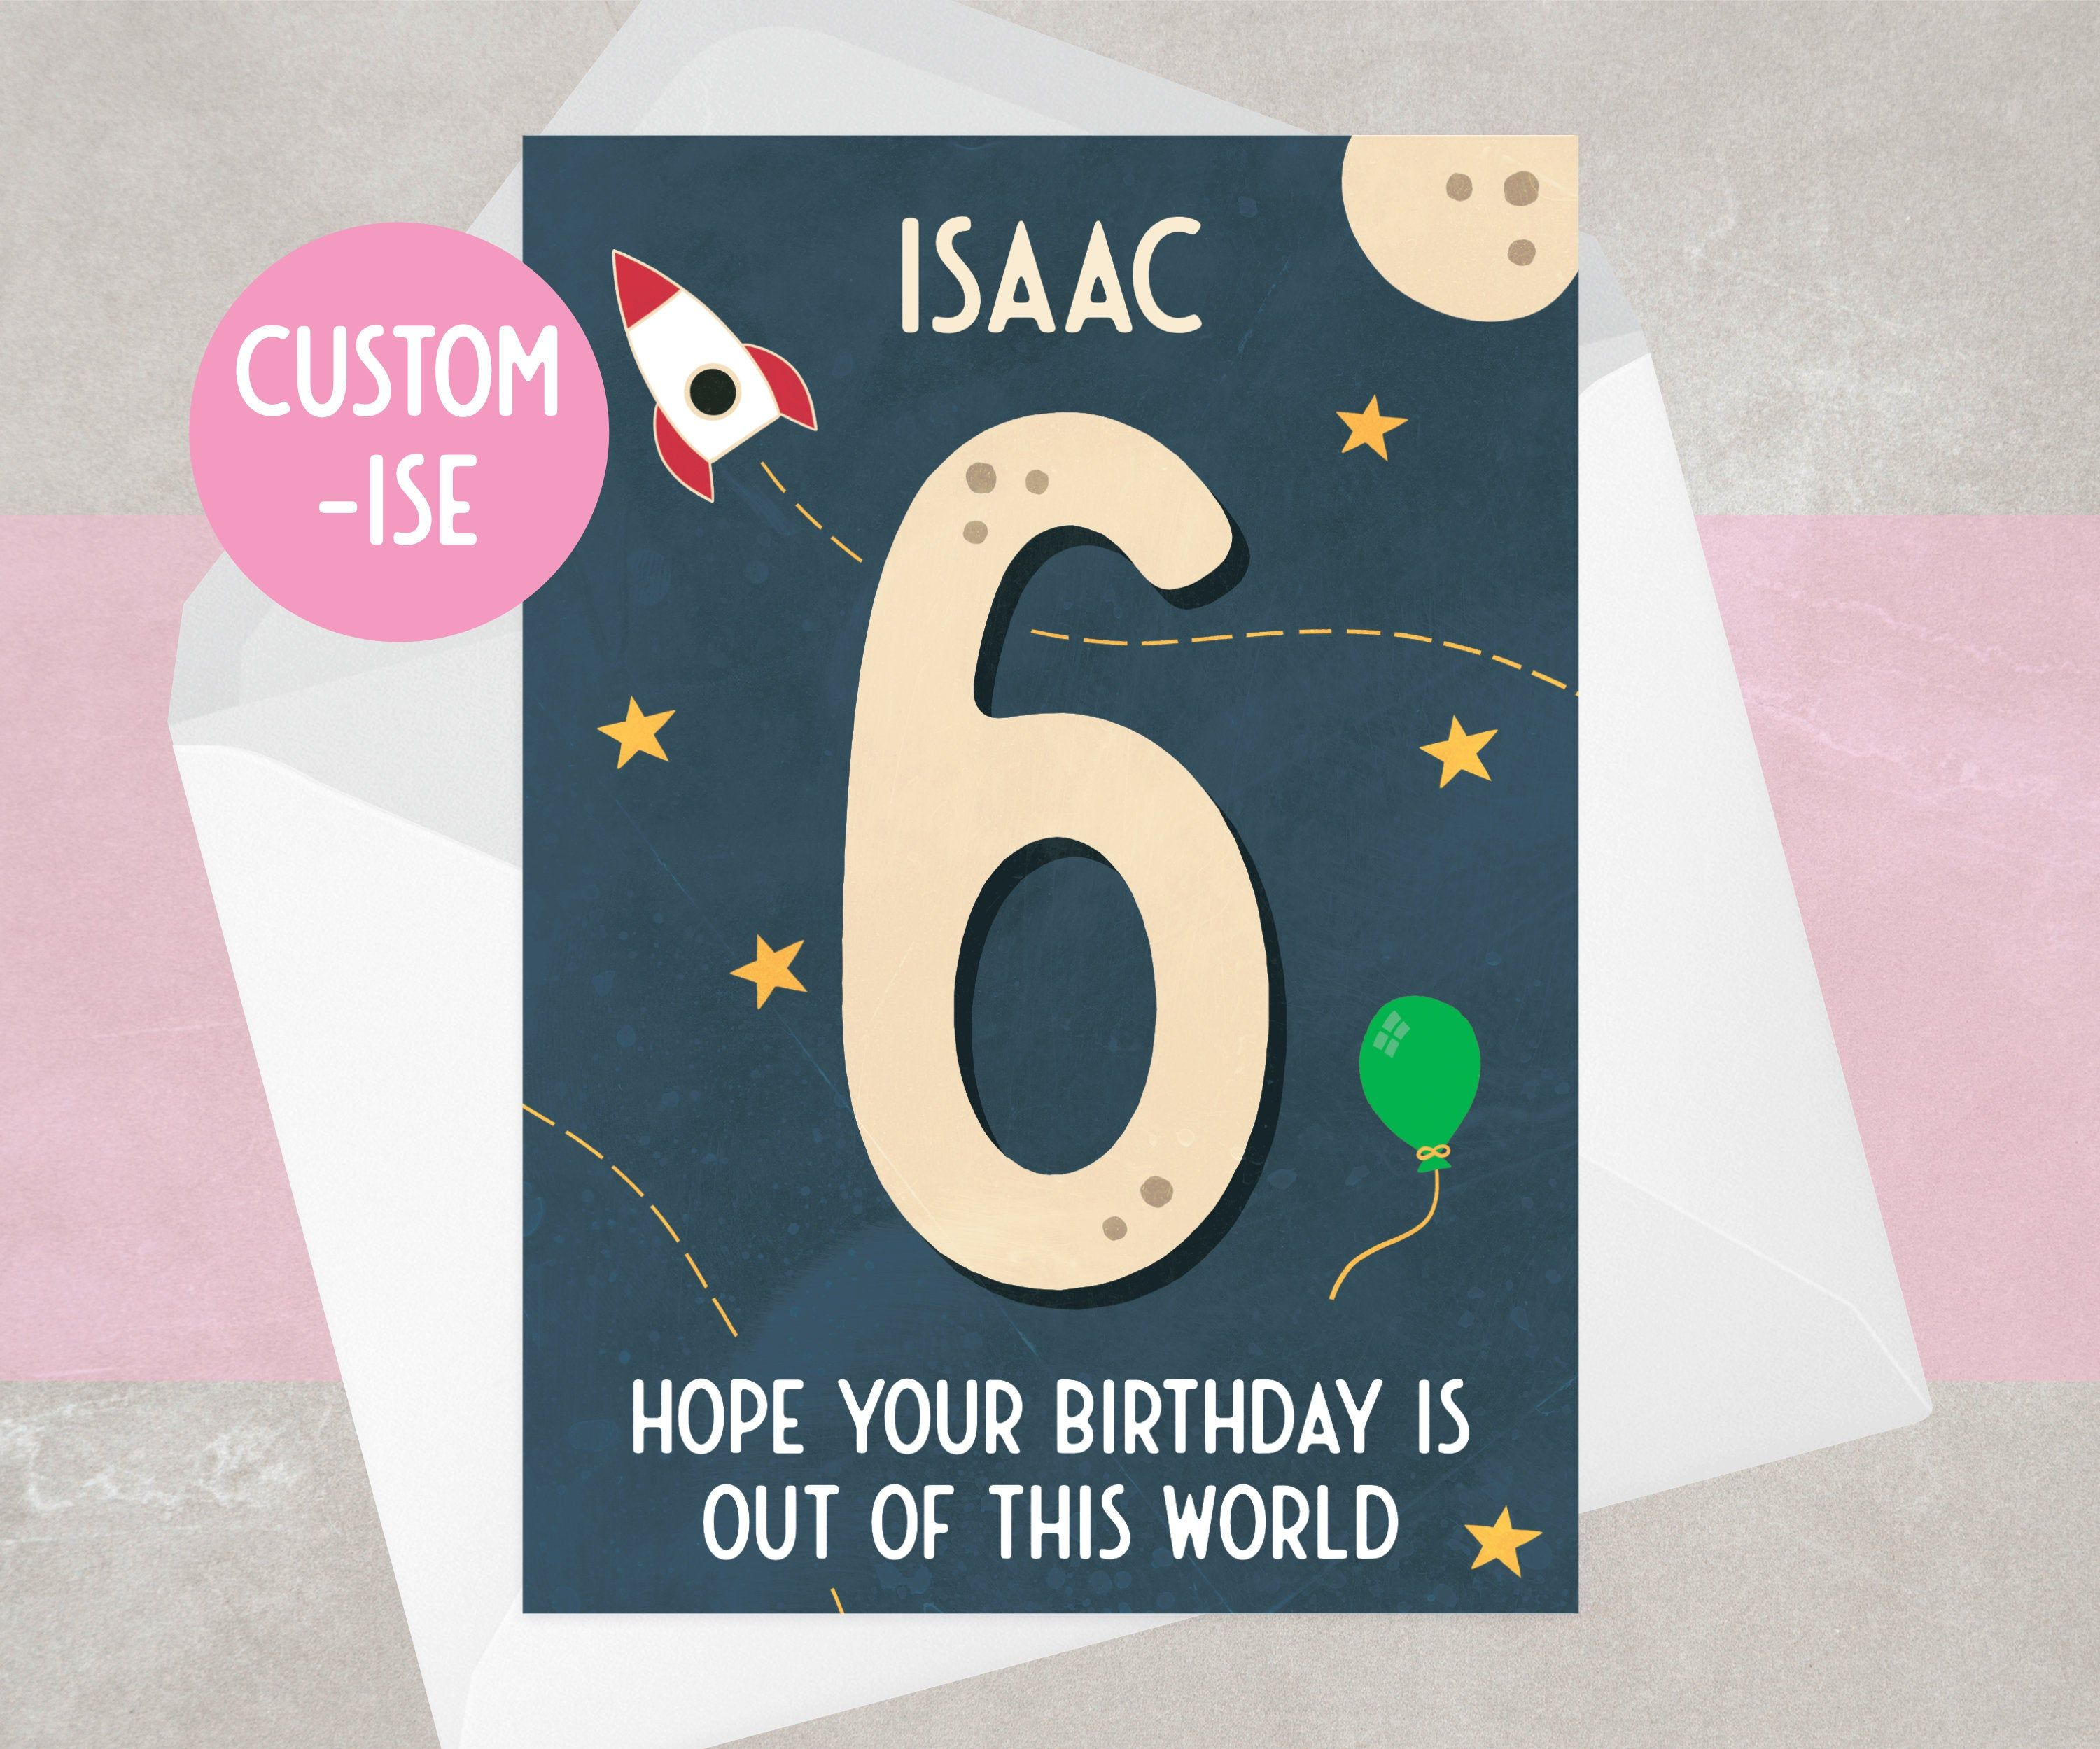 6th Birthday Card Personalised Space Theme For Boy For Etsy First Birthday Cards Birthday Cards Personal Cards